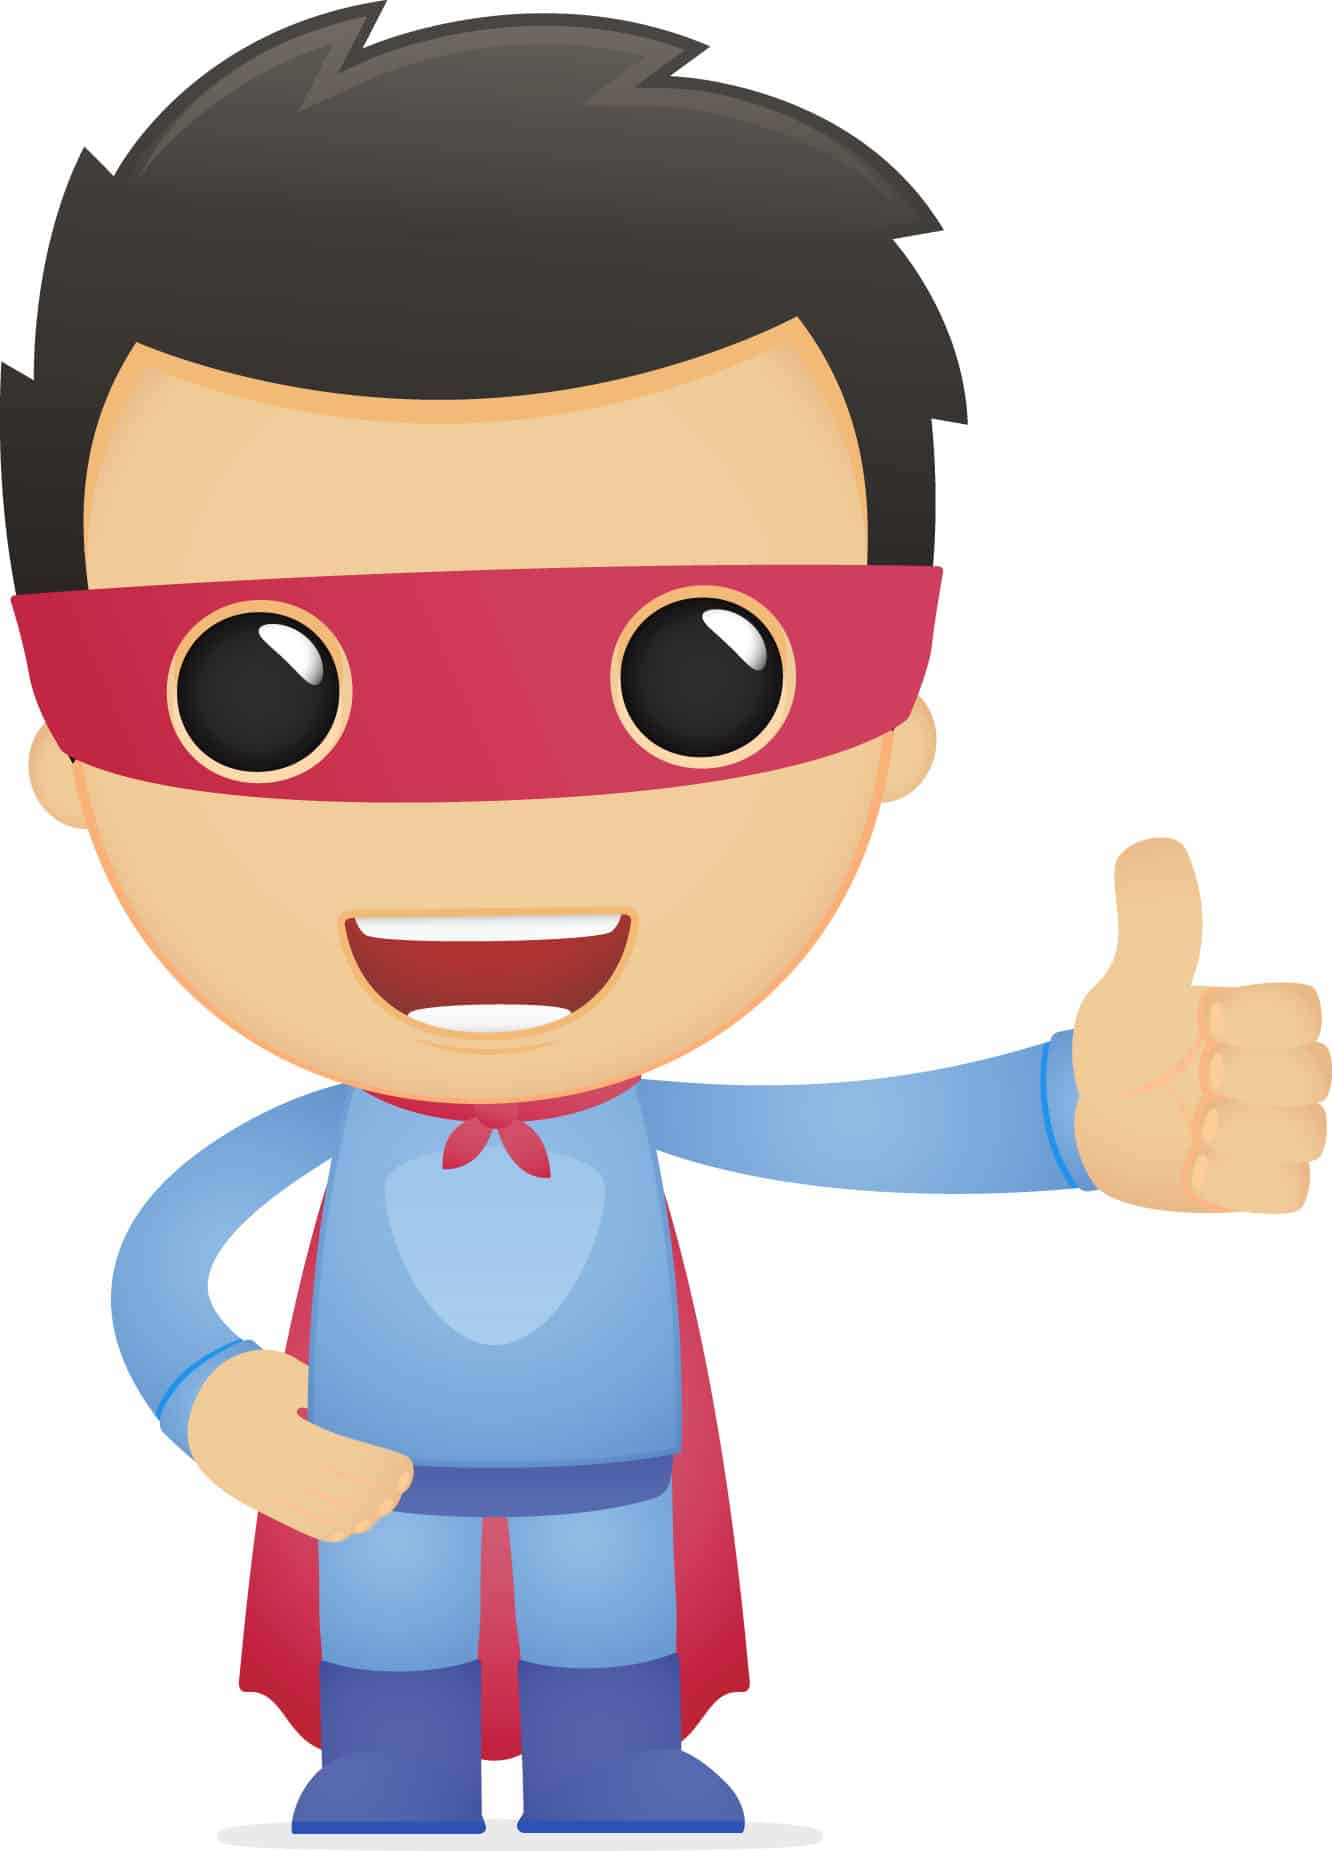 Superhero character with thumbs up